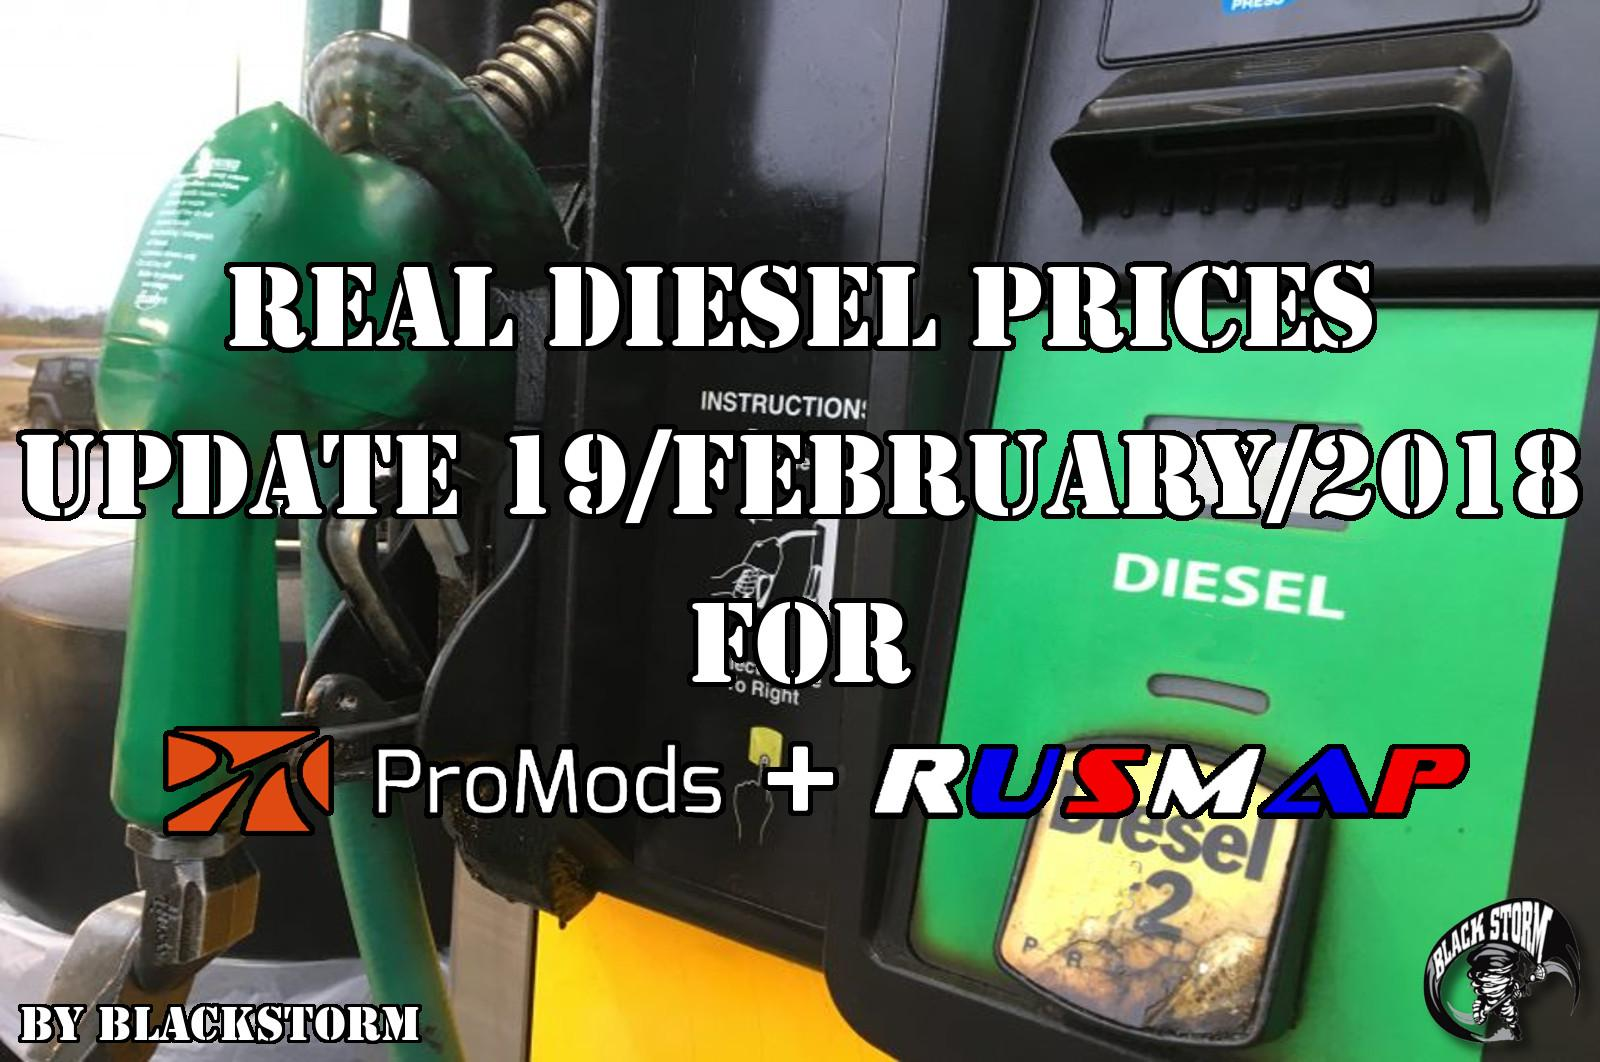 Real Diesel Prices Promods 2.26 & RusMap 1.8 (update 19-02-2018)